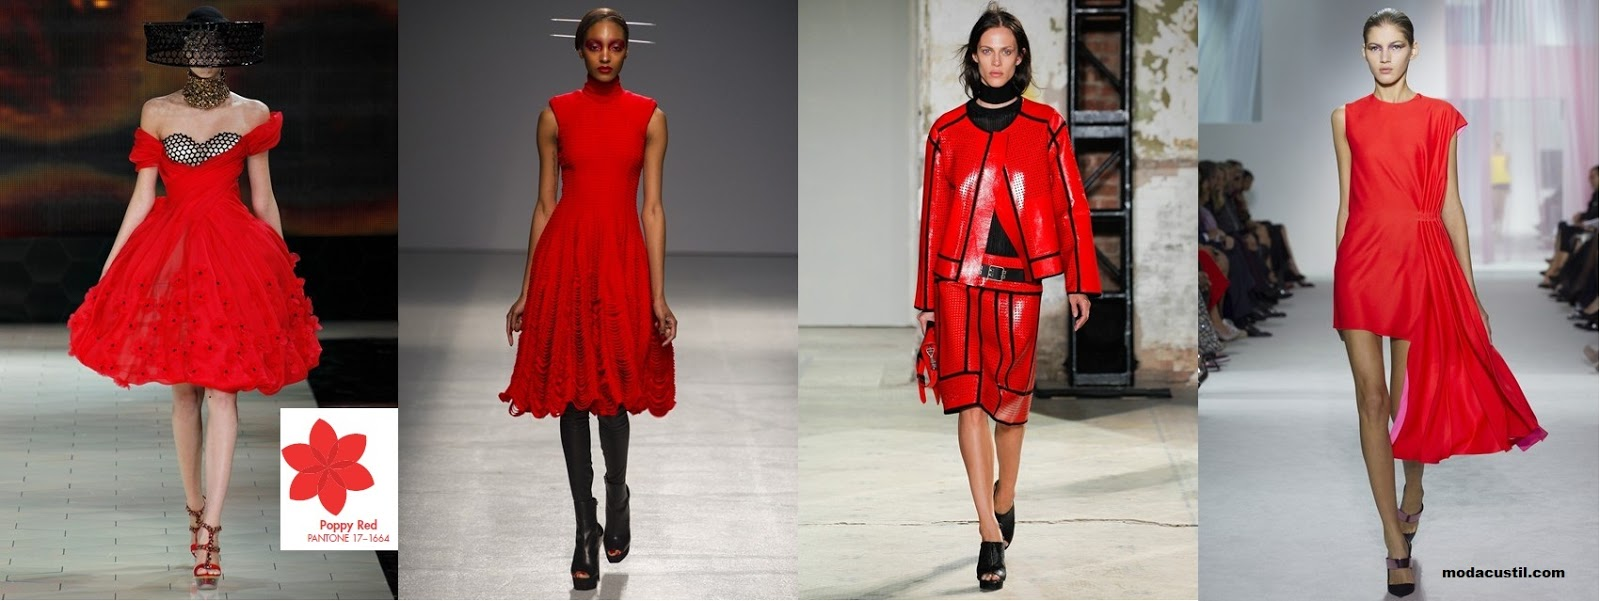 Red Poppy - Colors Spring Summer 2013 Fashion